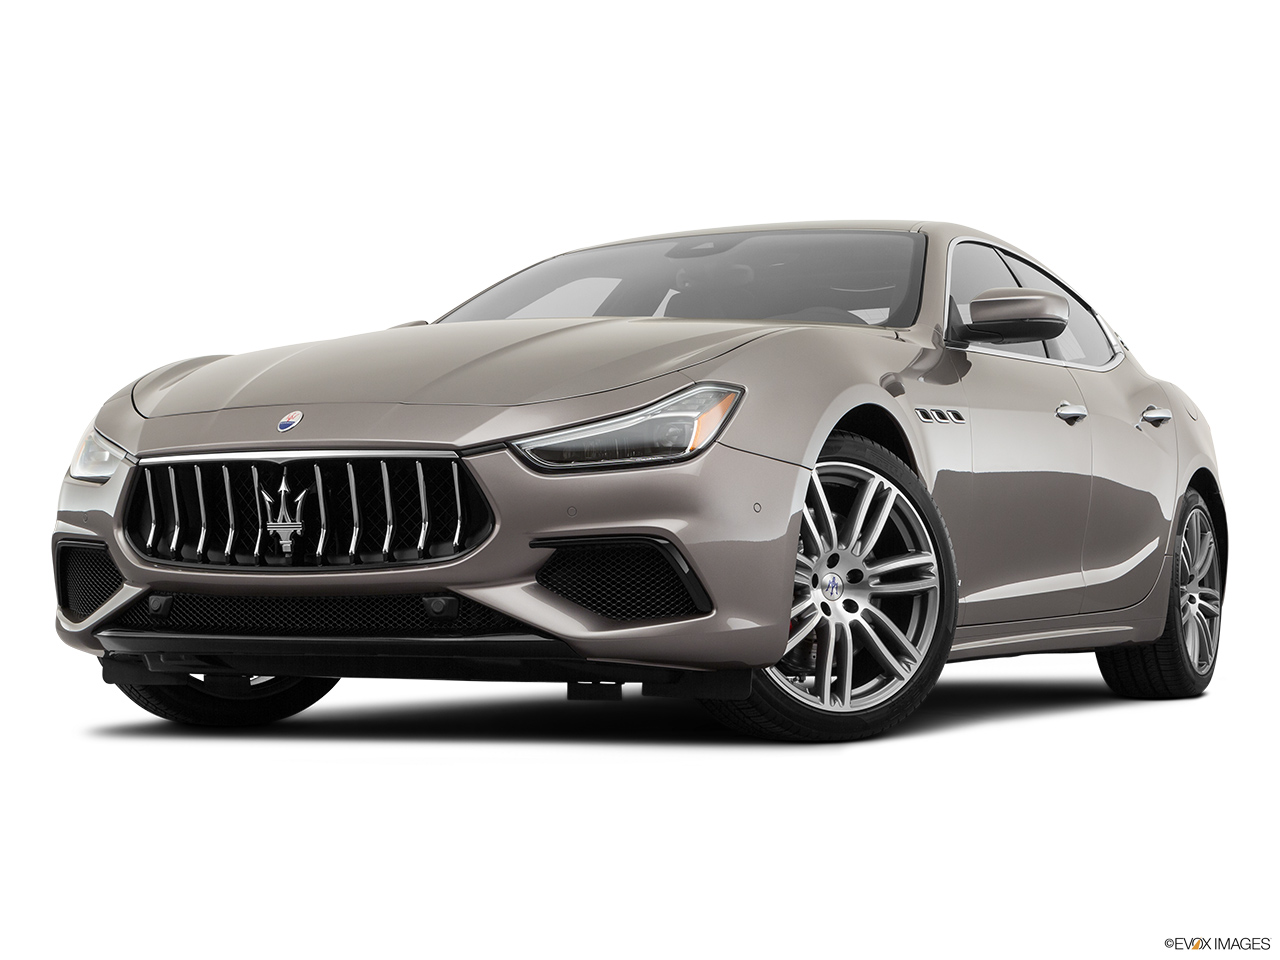 2020 Maserati Ghibli S Gransport Front angle view, low wide perspective.